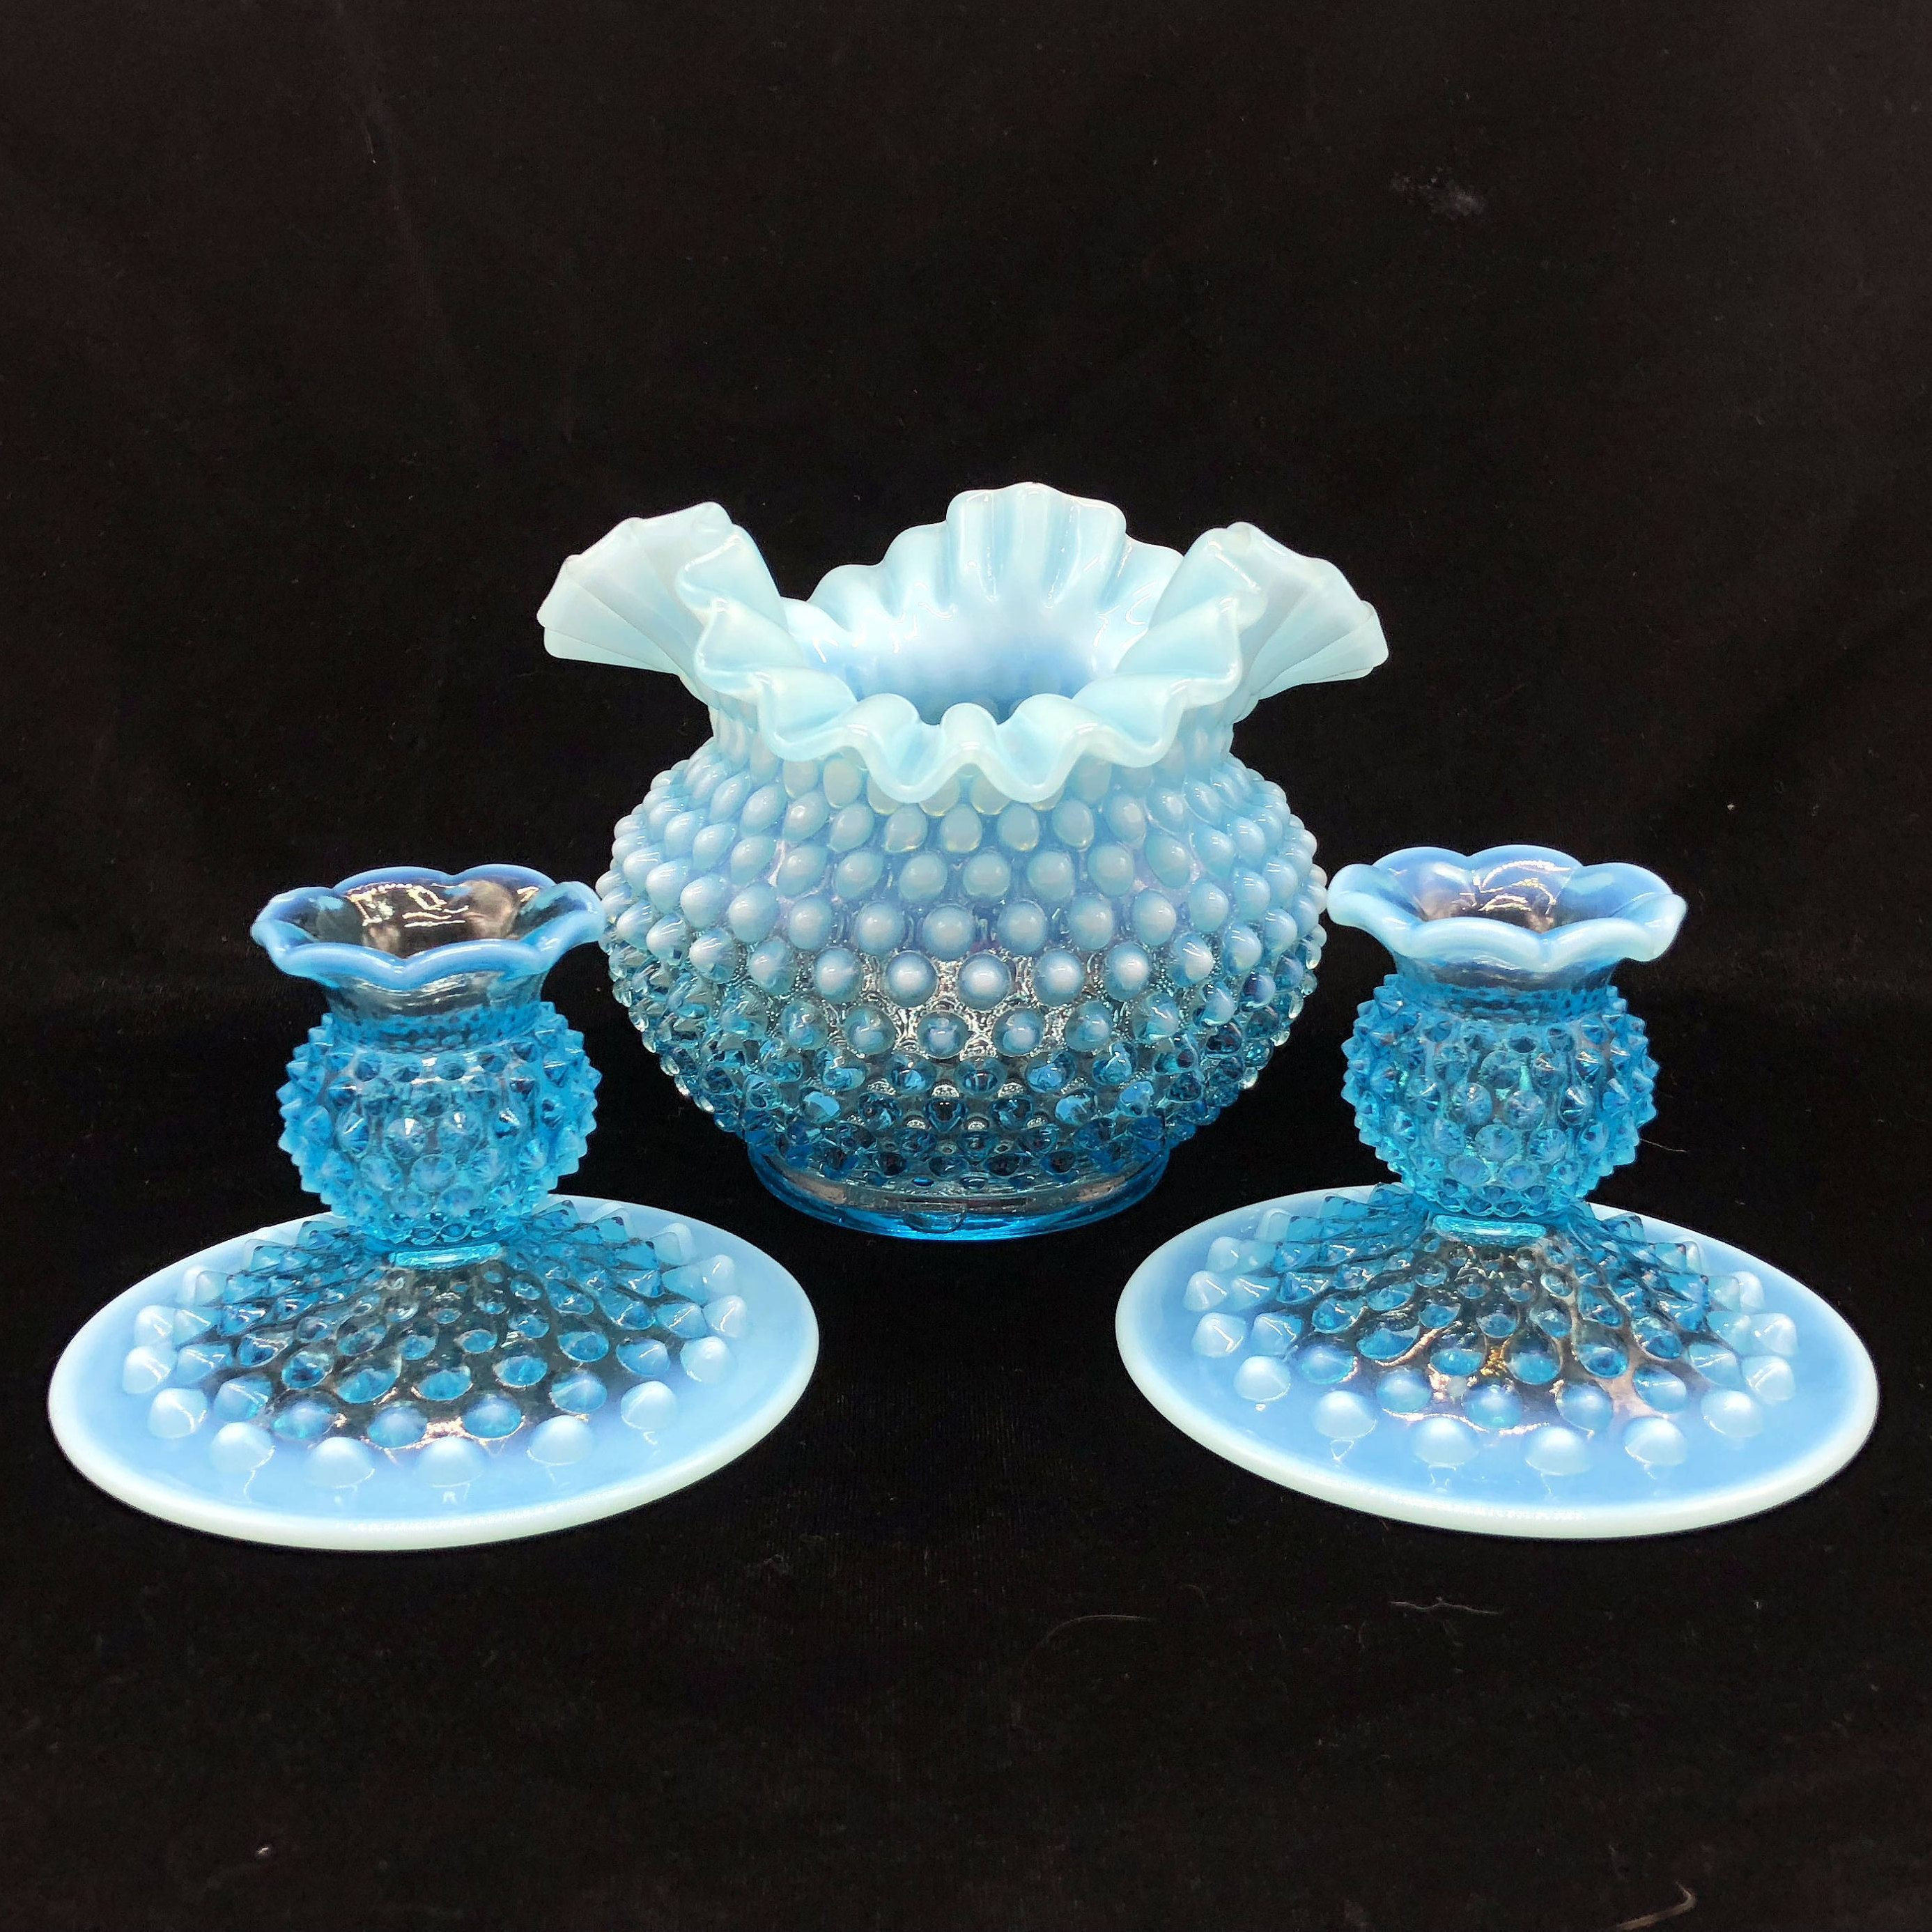 Fenton Blue Glass Vase Antique Of 37 Fenton Blue Glass Vase the Weekly World In Fenton Hobnail Glass Centerpiece Set Blue Opalescent Vase Candle